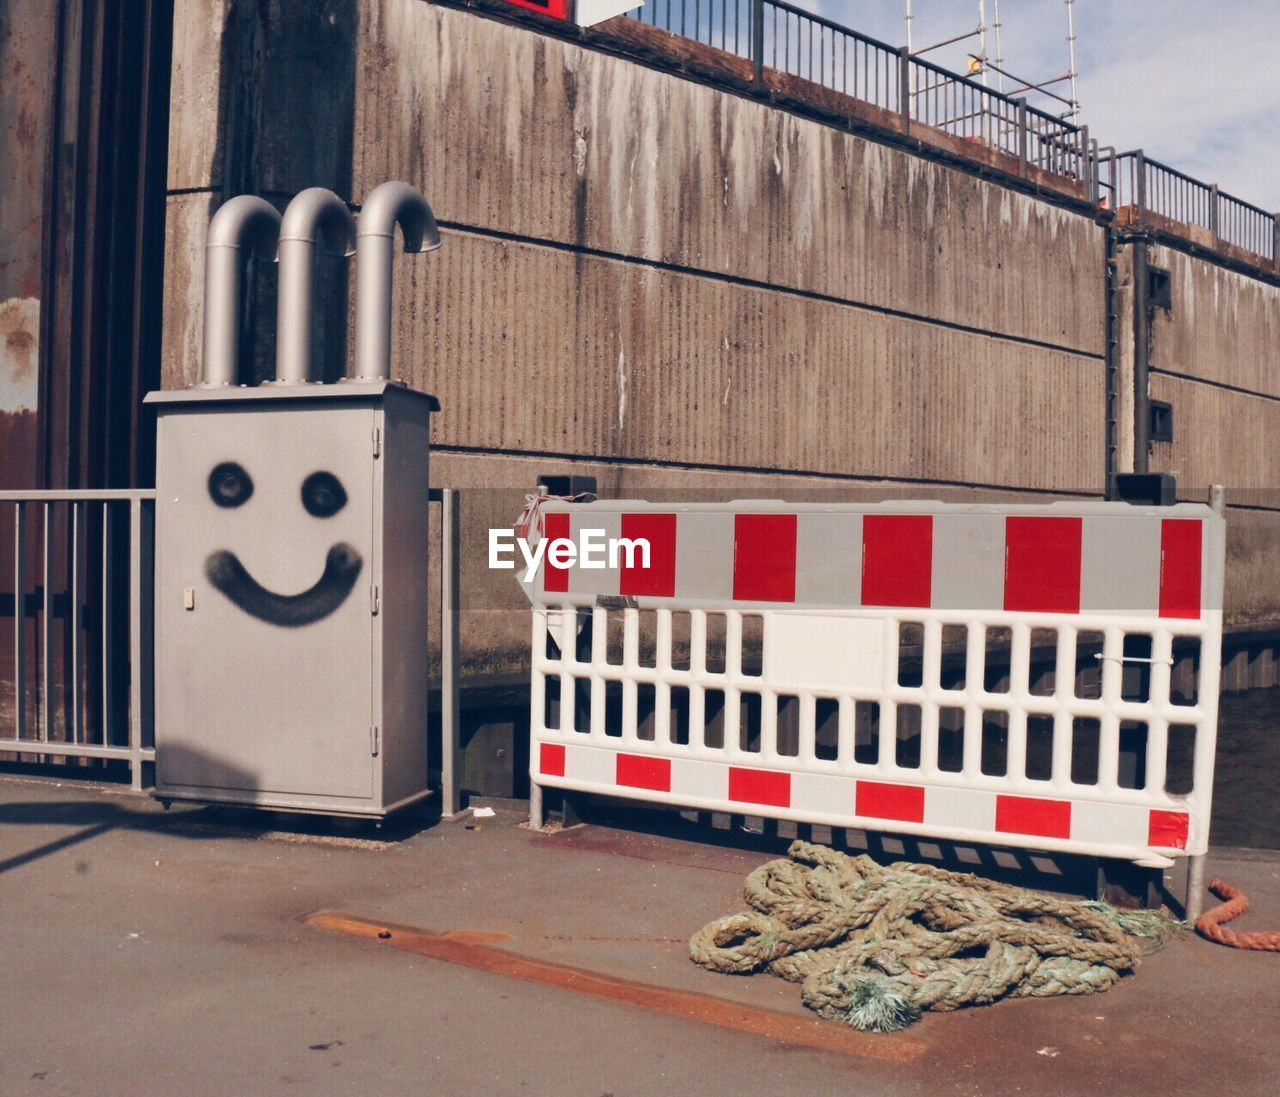 Anthropomorphic smiley face on metallic container by barricade on street